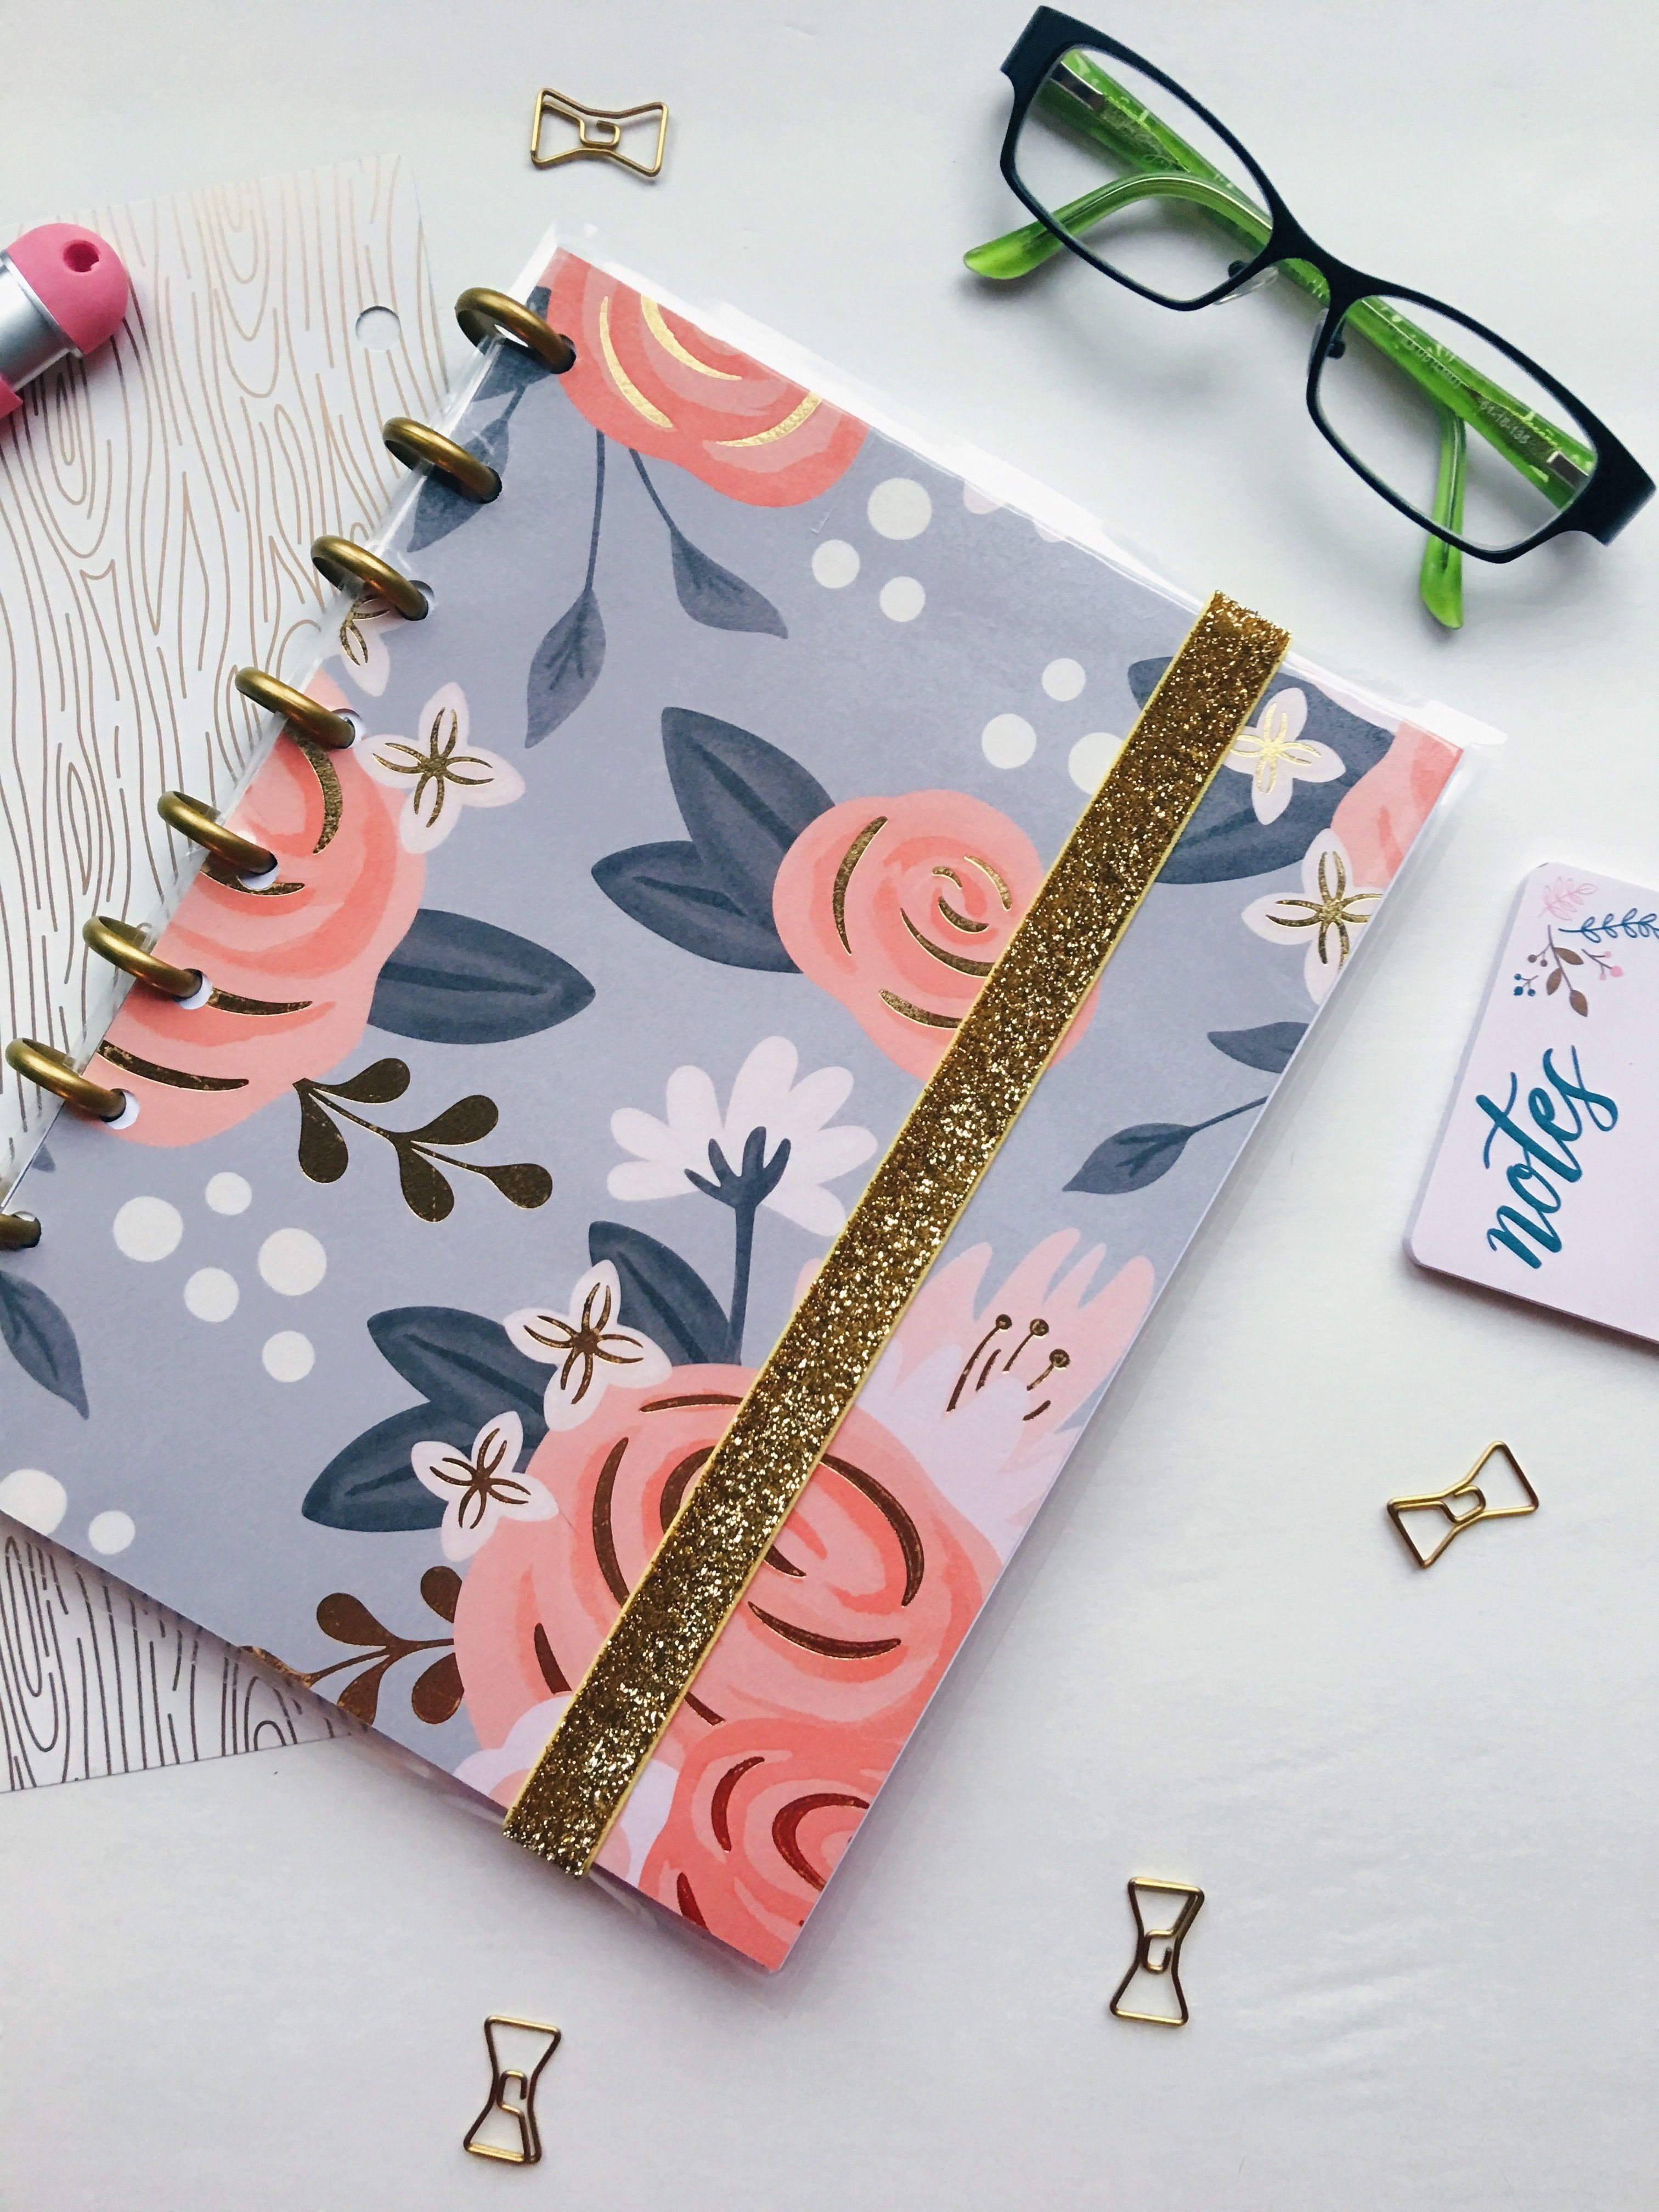 My Drifting Desk | Paper Trail Planners - Customizable planners. Blogger planner to help organize your blog + biz!